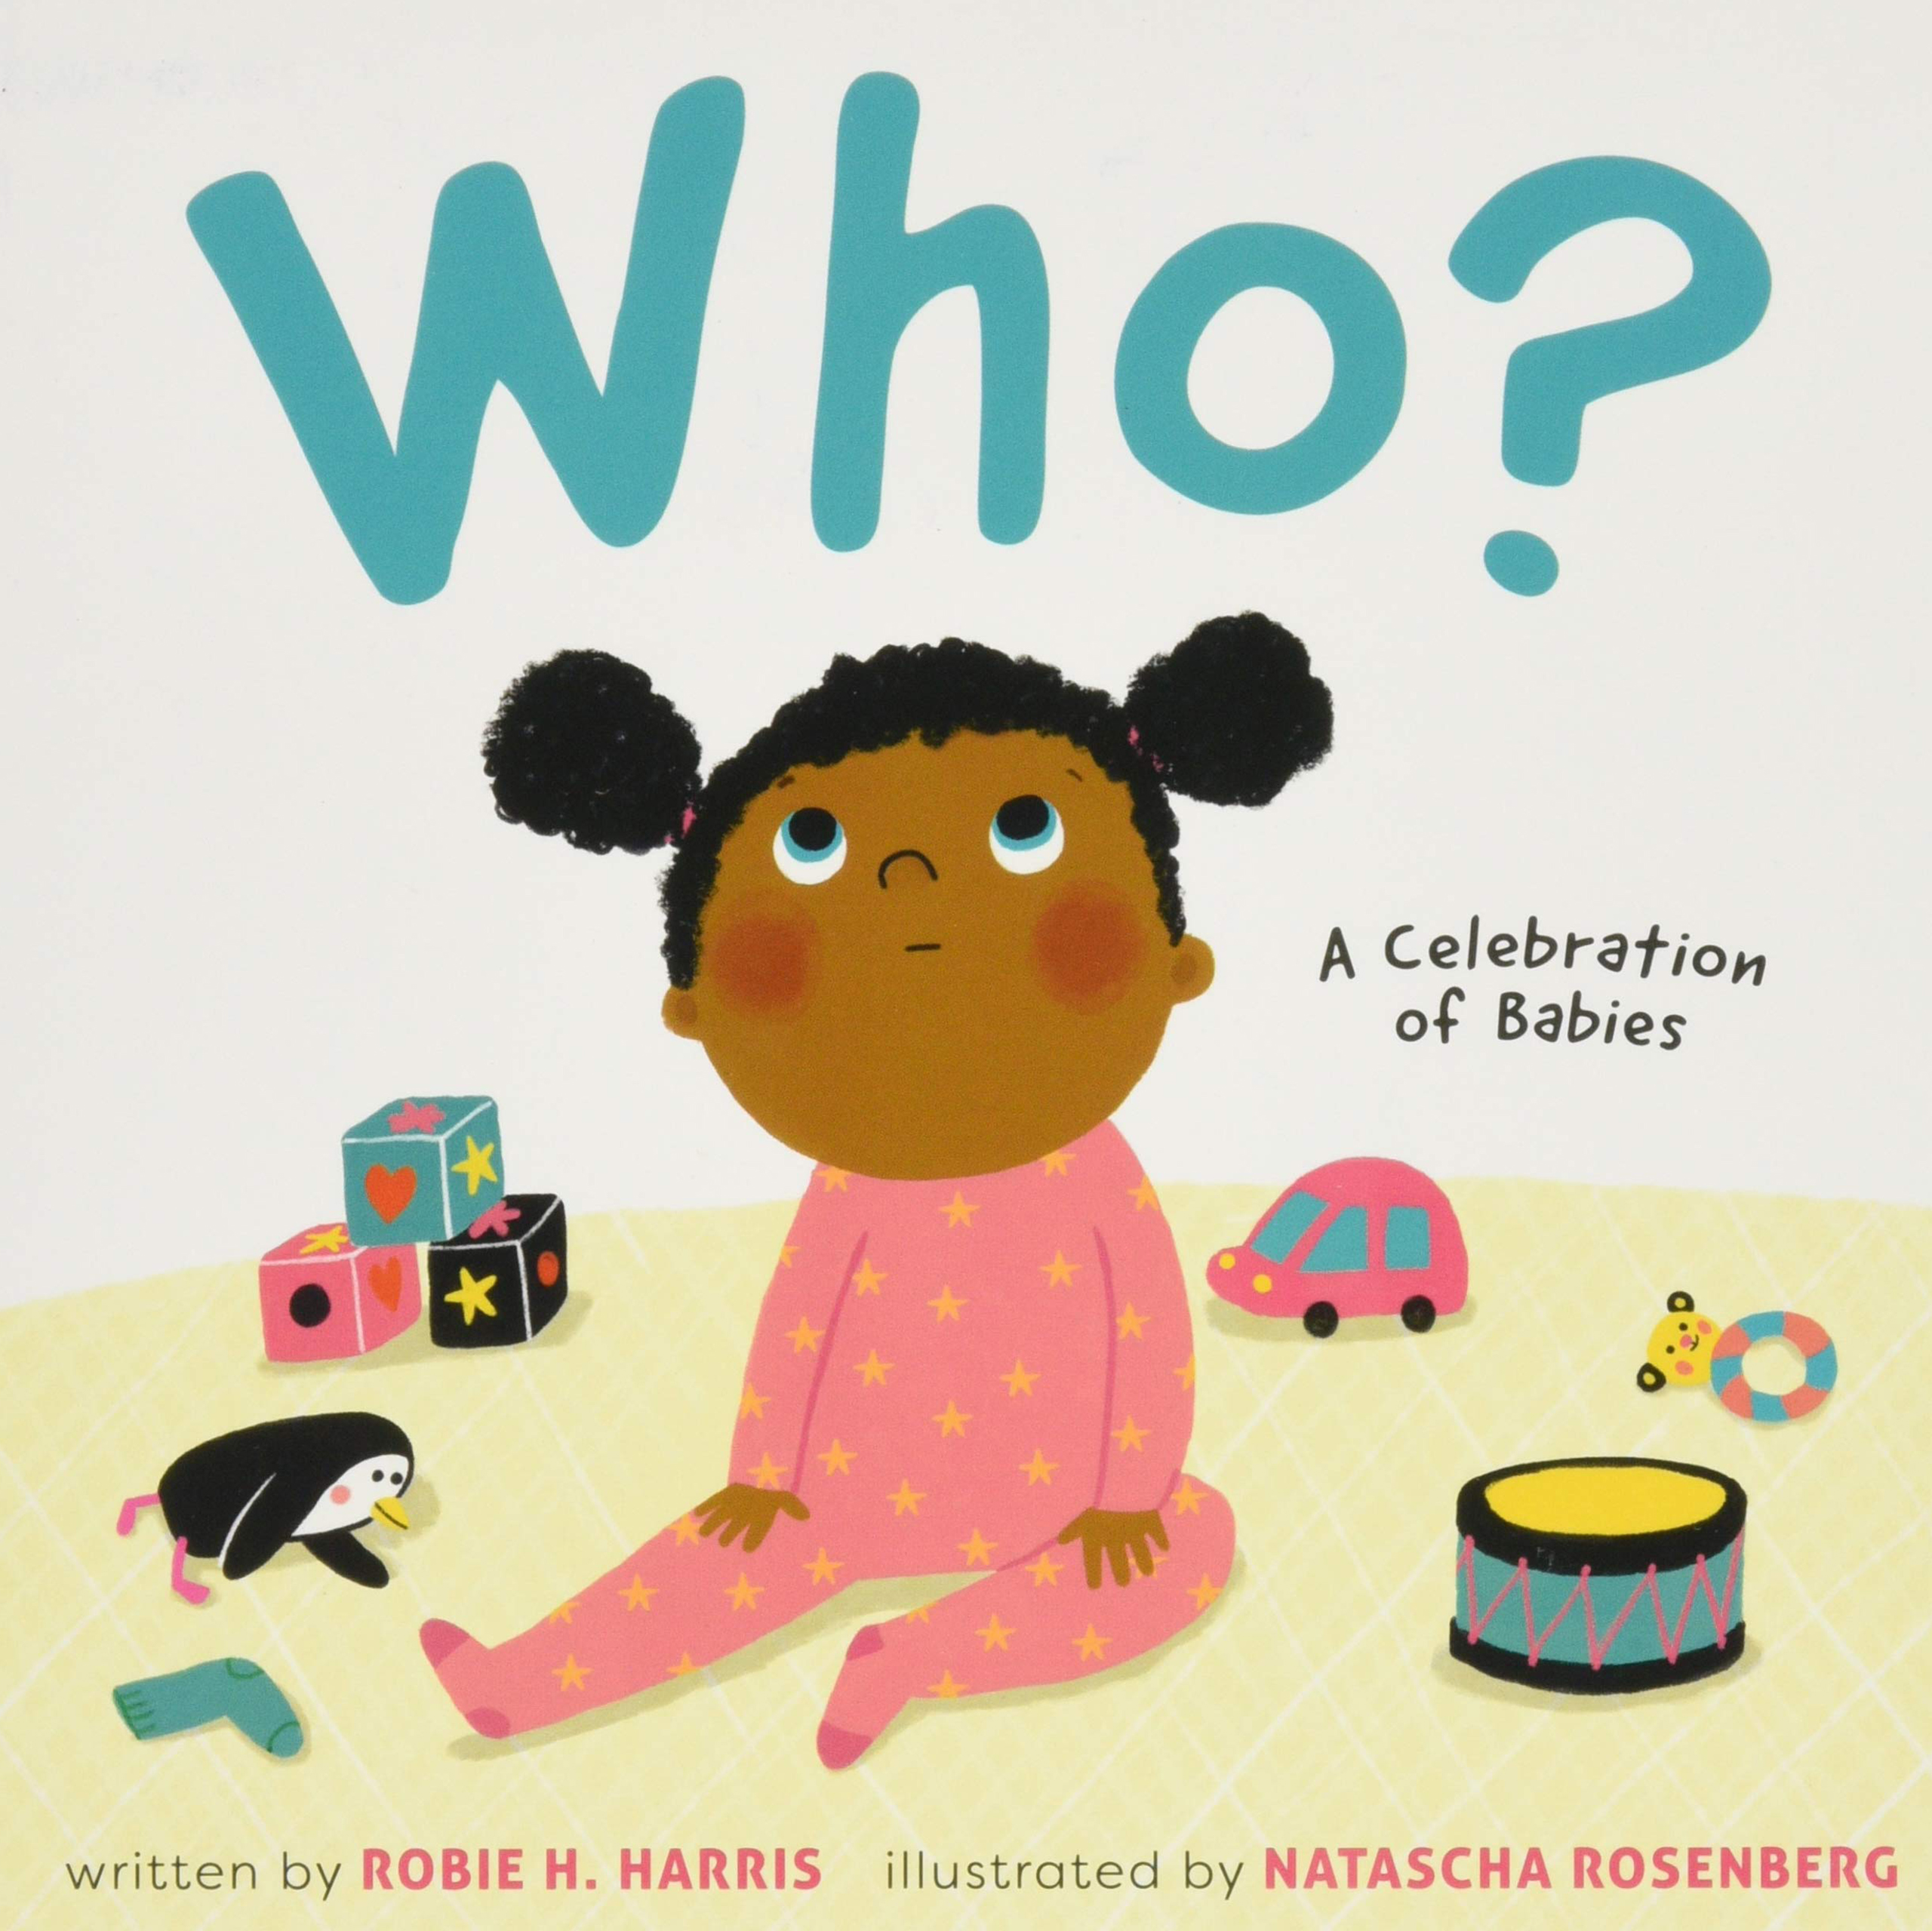 Who? A Celebration of Babies by Robie H. Harris